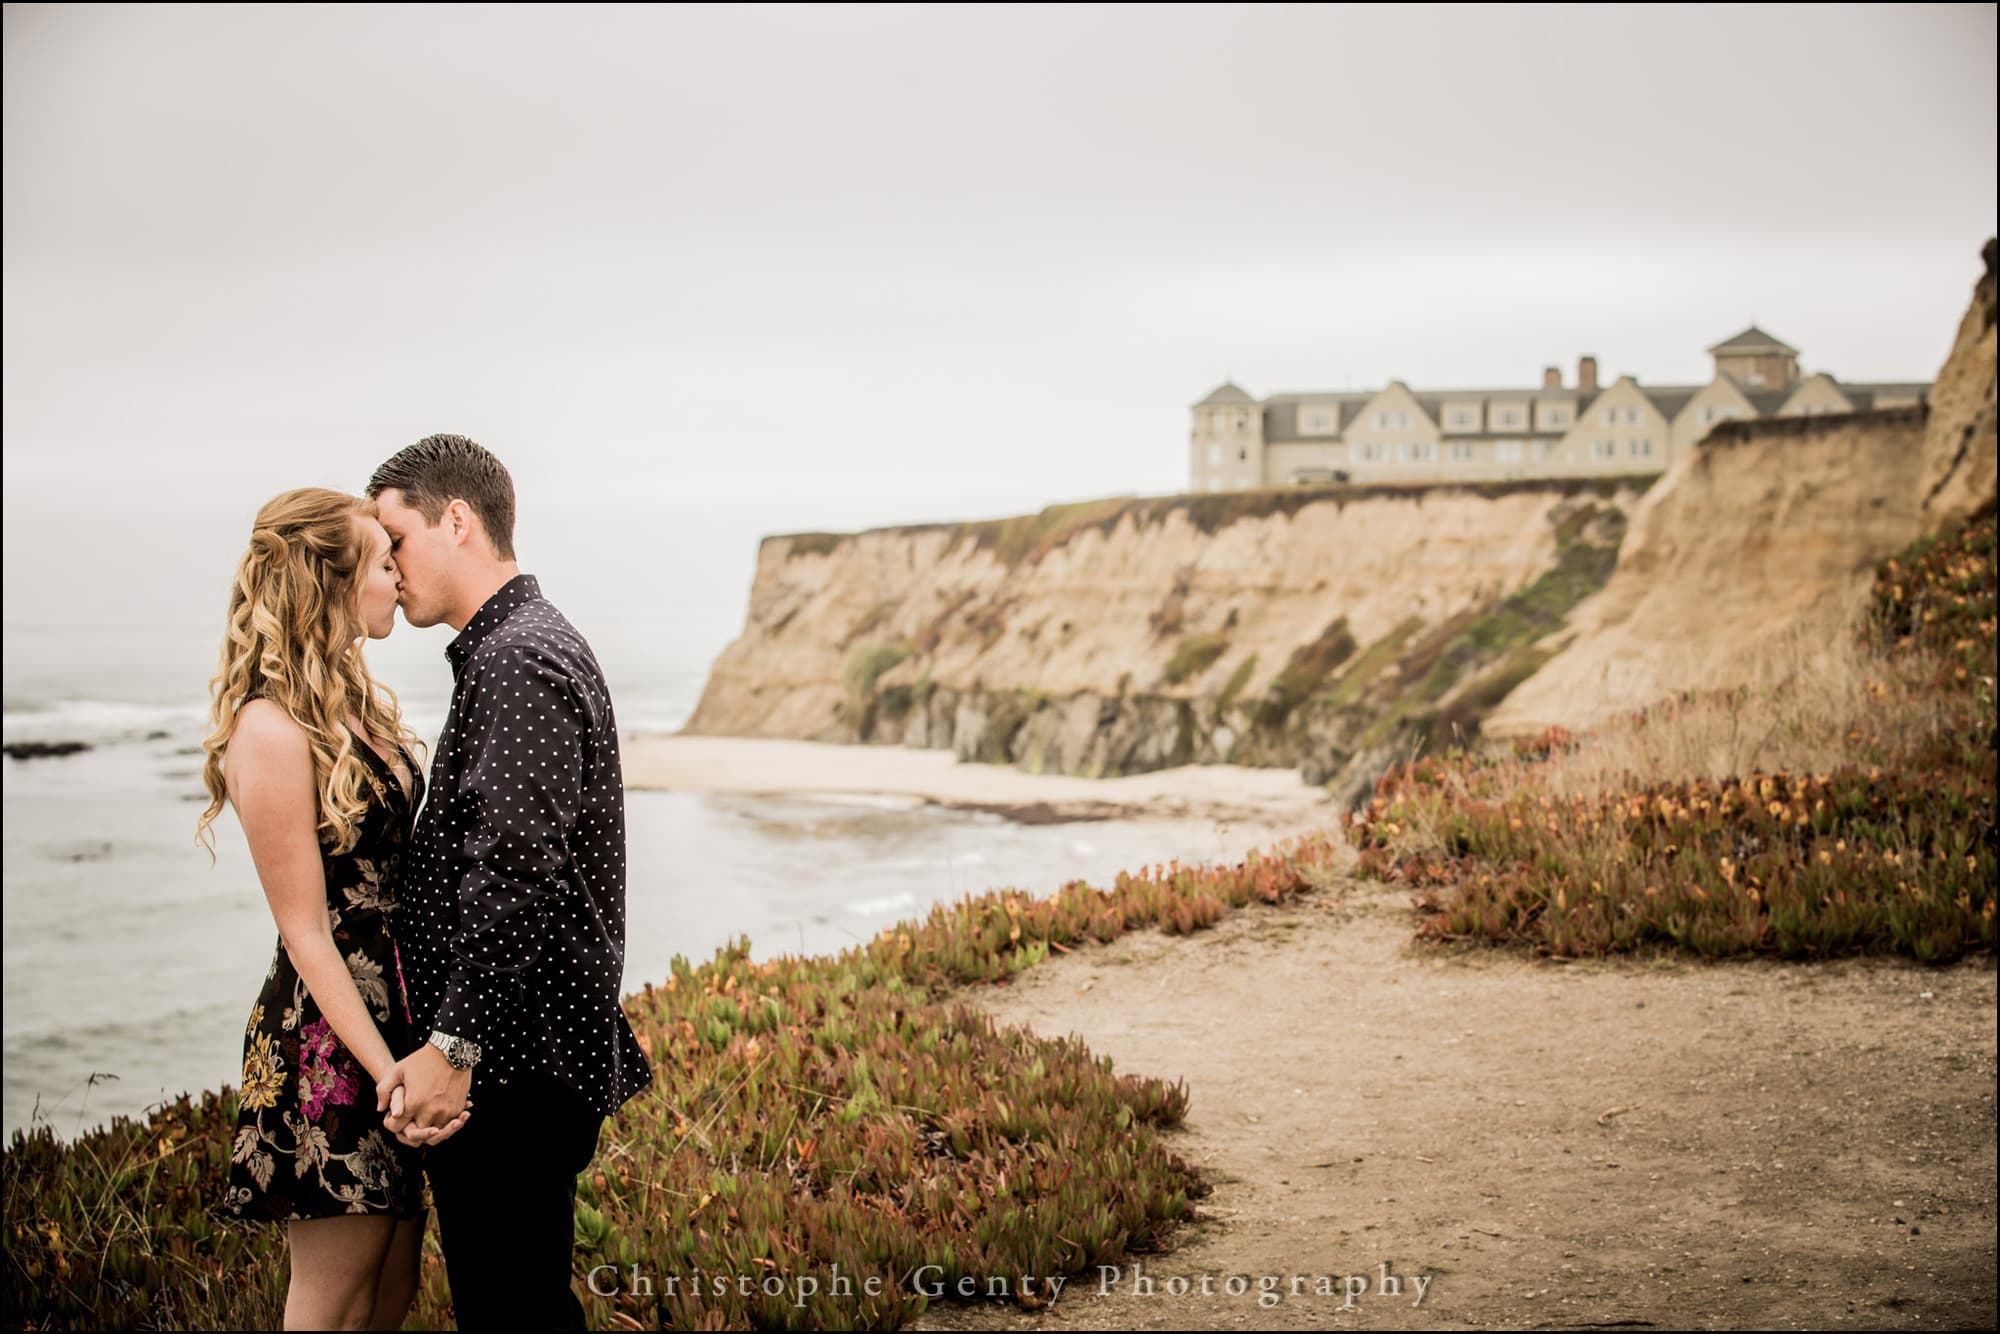 Engagement Photography In Half Moon Bay Ca